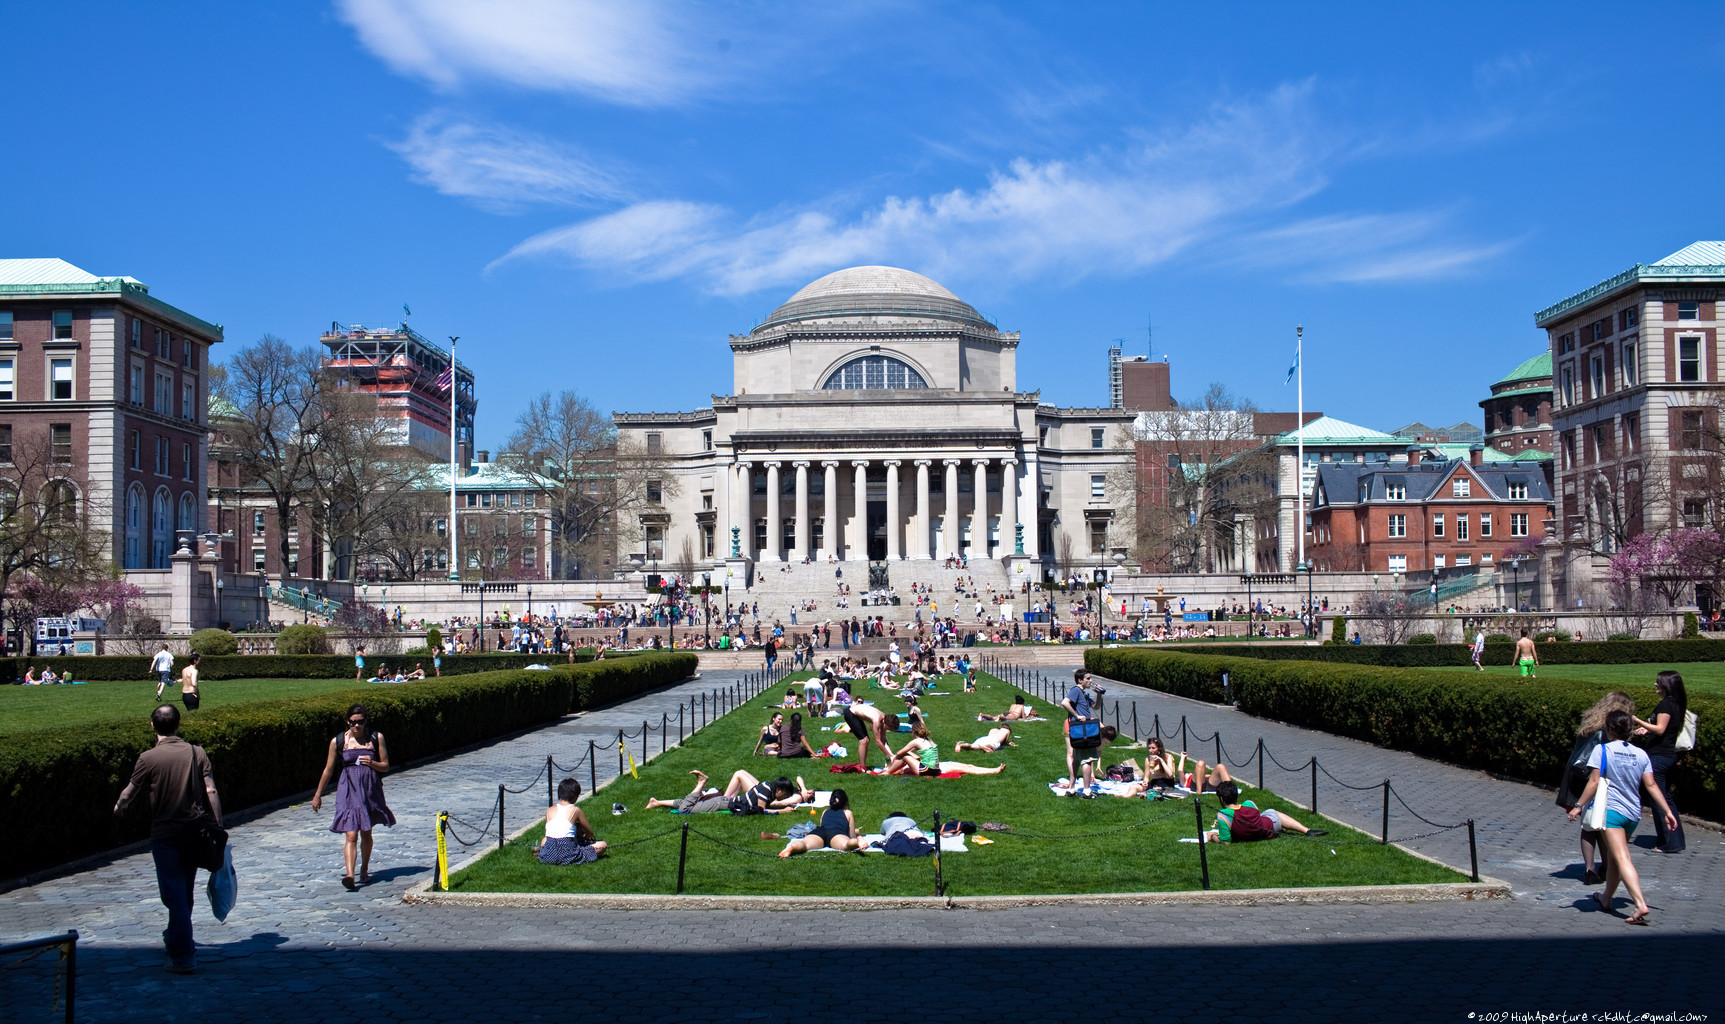 Distance education learning centre at the columbia university in the